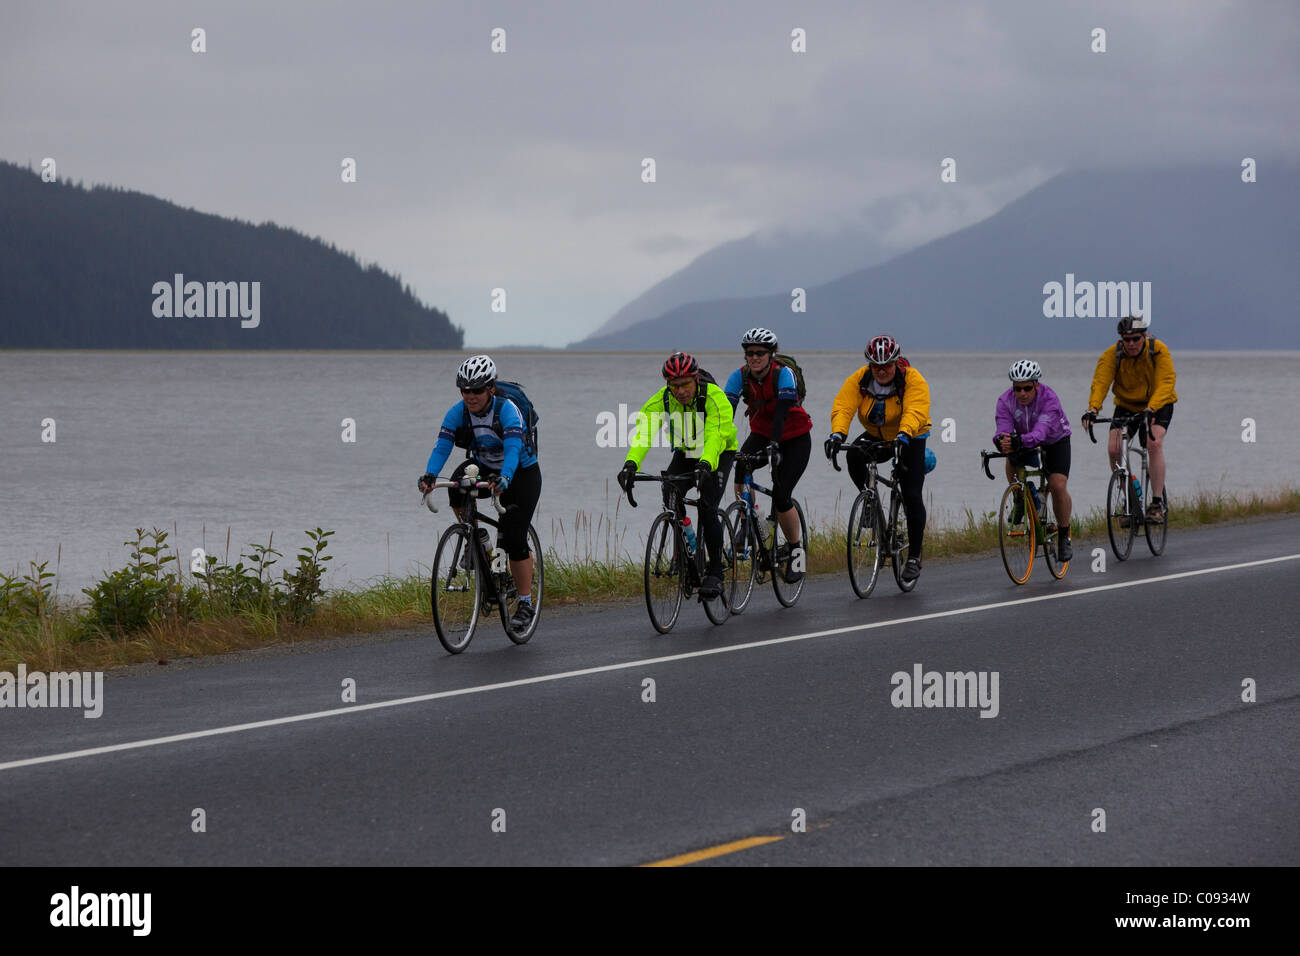 A group of bikers ride on the shoulder of the Seward Highway just south of Girdwood during a rainy weekend race - Stock Image